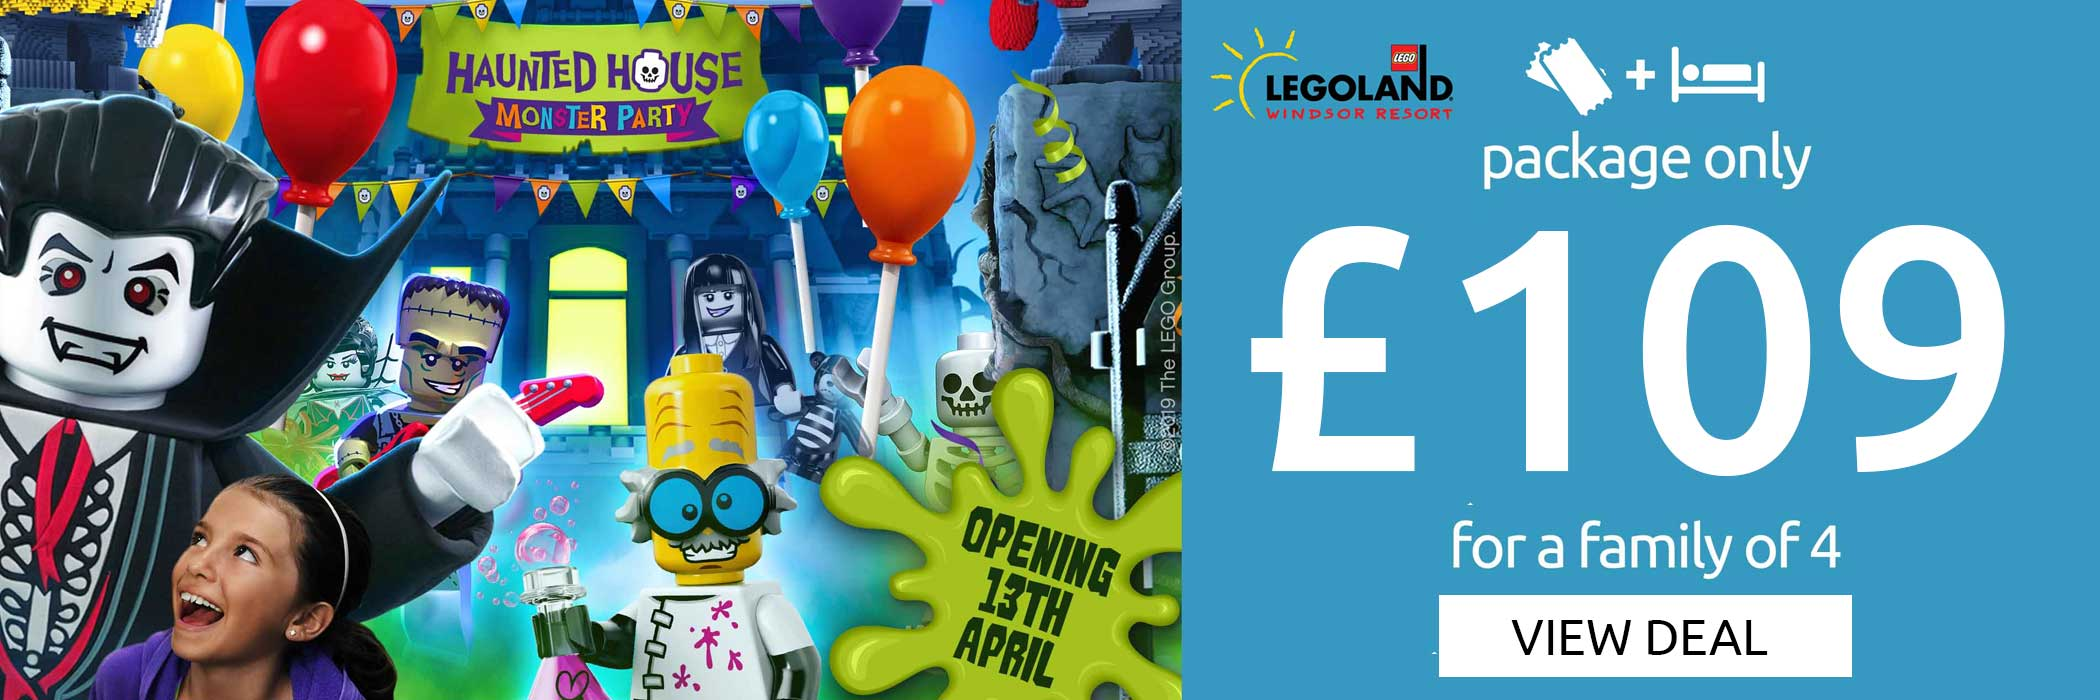 Legoland 109 pound offer